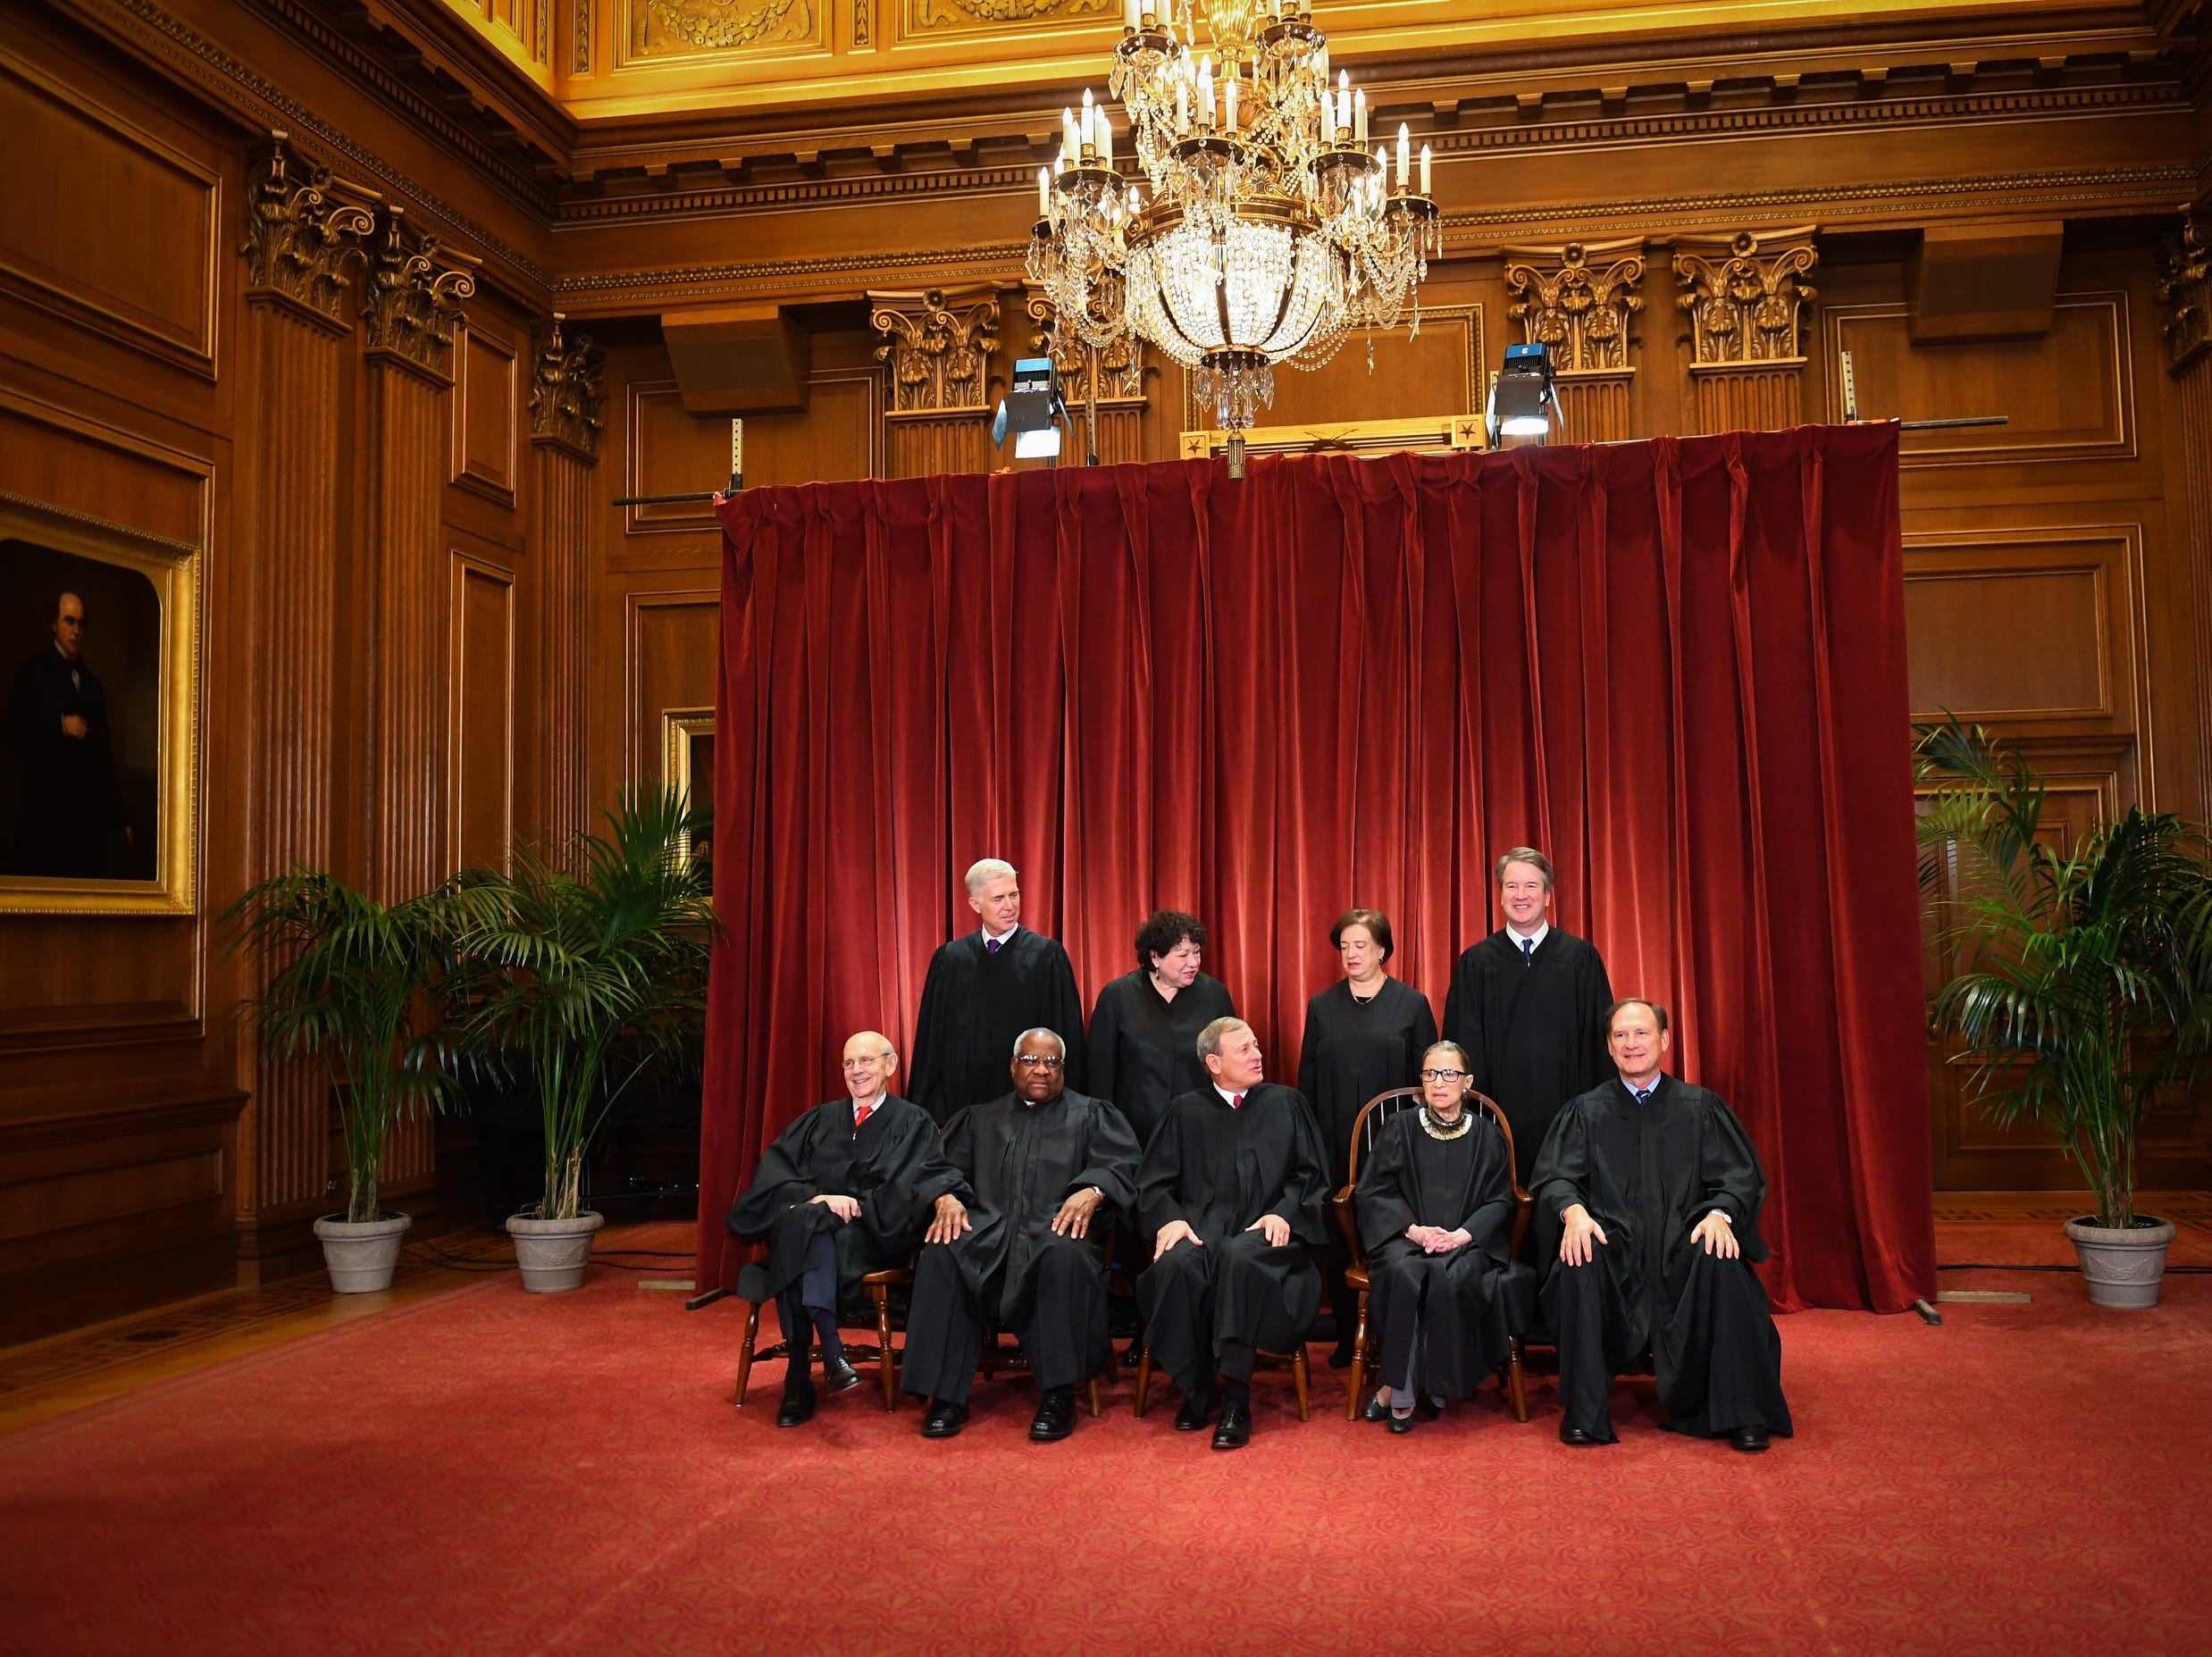 Here's the scene setter for the formal portrait session of the 2018 Supreme Court Justices of the United States.  Seated from left: Associate Justice Stephen Breyer, Associate Justice Clarence Thomas, Chief Justice of the United States John G. Roberts, Associate Justice Ruth Bader Ginsburg and Associate Justice Samuel Alito, Jr.  Standing behind from left: Associate Justice Neil Gorsuch, Associate Justice Sonia Sotomayor, Associate Justice Elena Kagan and Associate Justice Brett M. Kavanaugh.